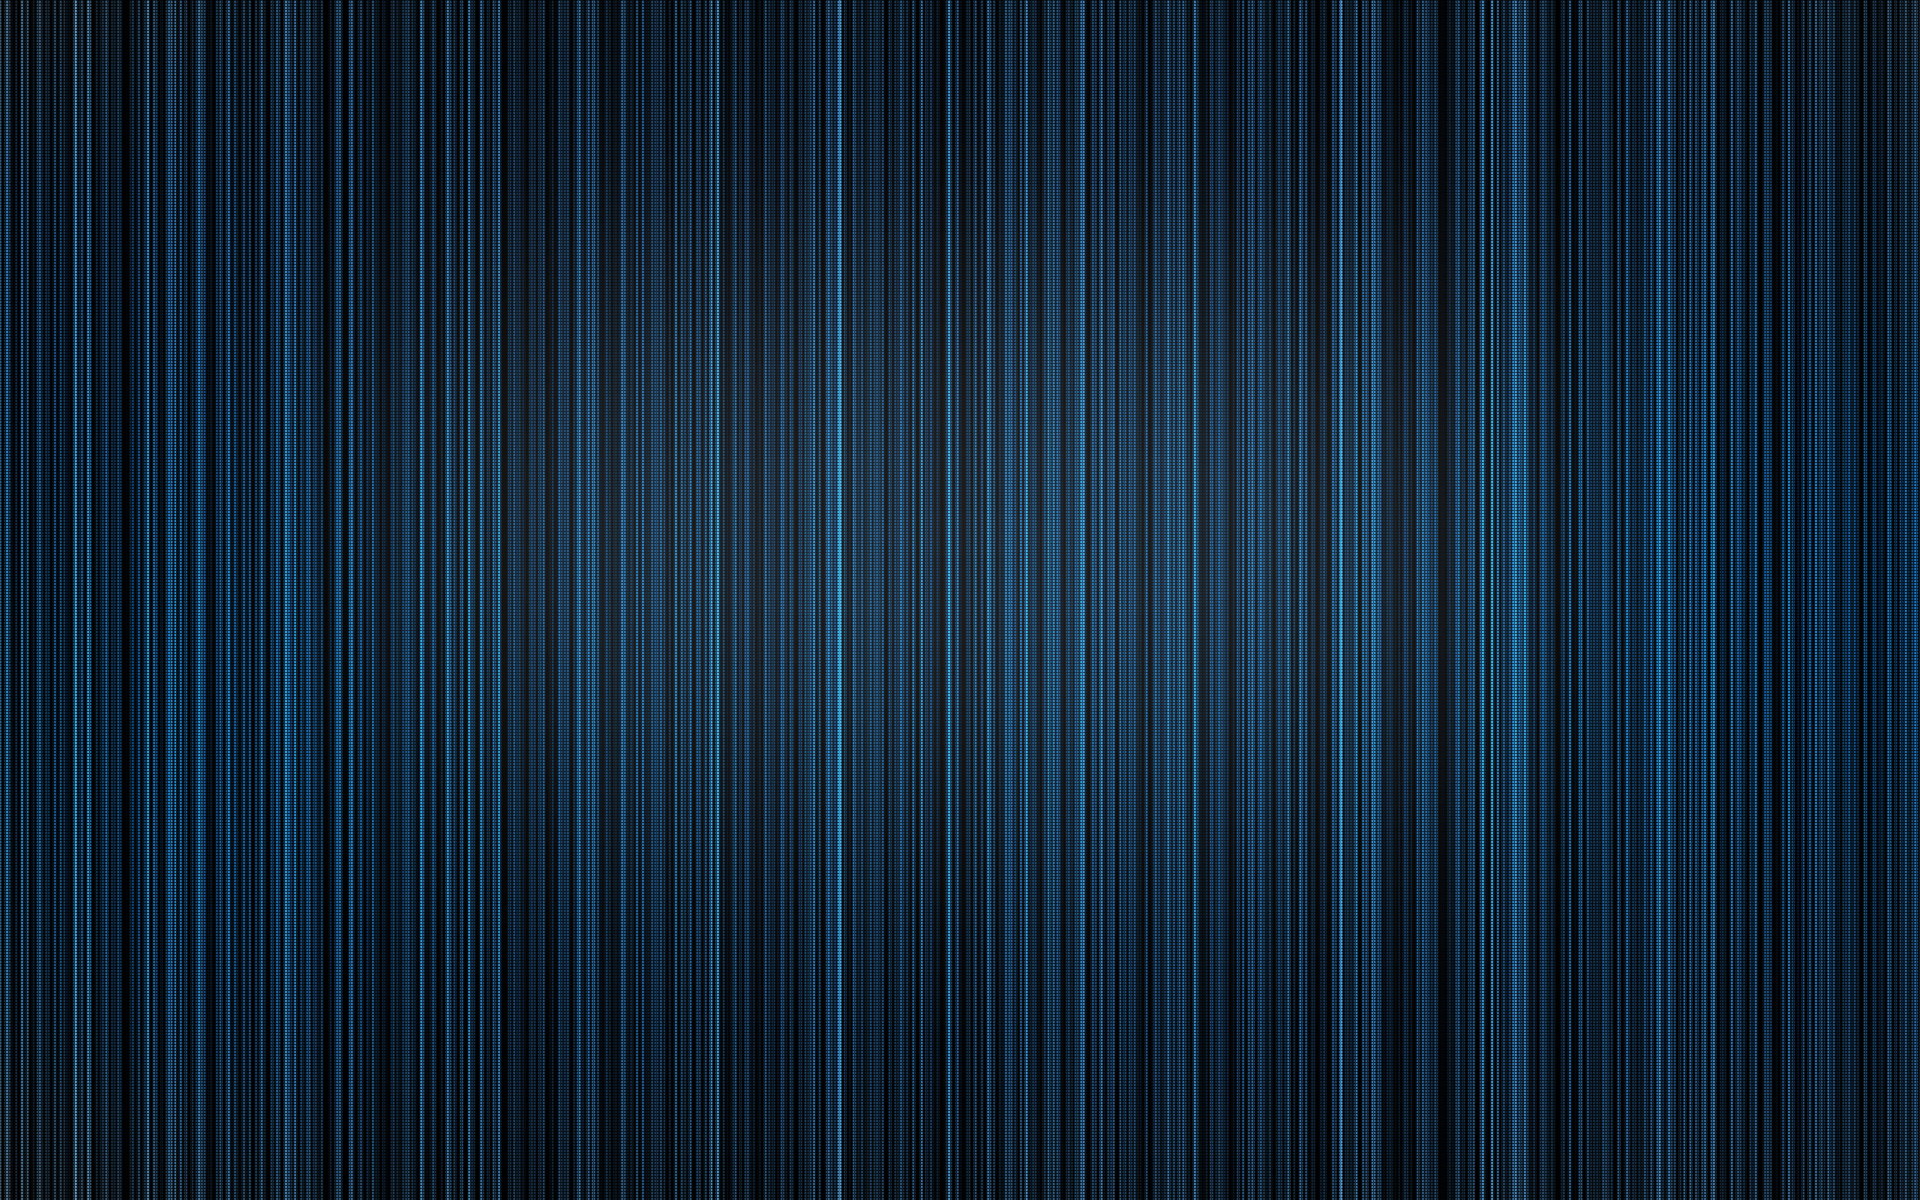 Line And Texture : Lines texture backgrounds background for